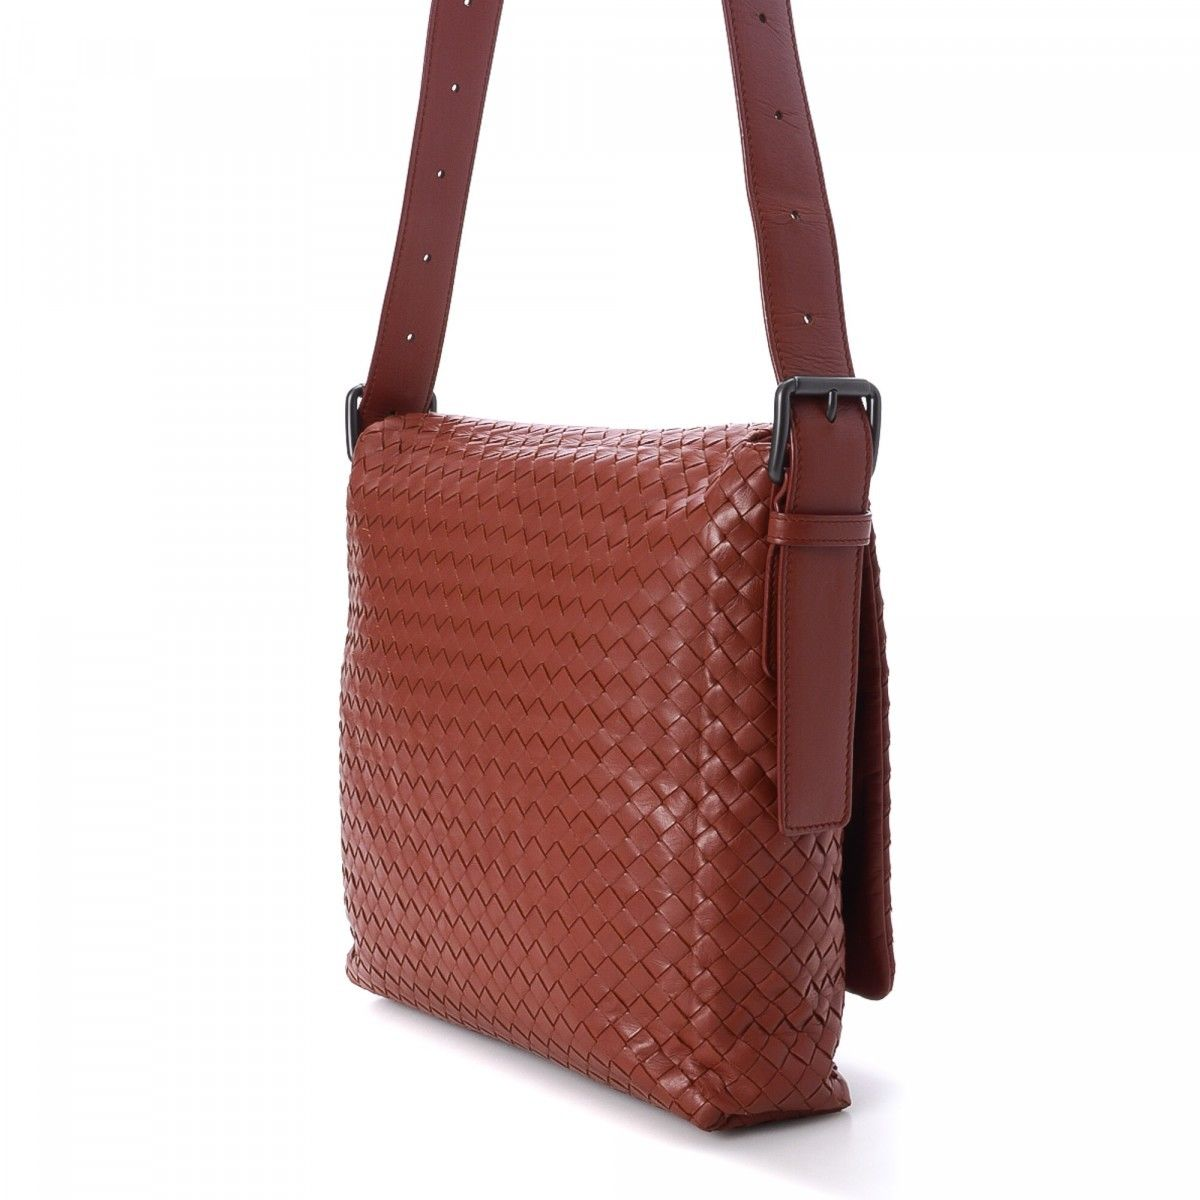 ... big sale e4d16 7c46f Bottega Veneta Intrecciato Messenger Bag ... 2450e9354b